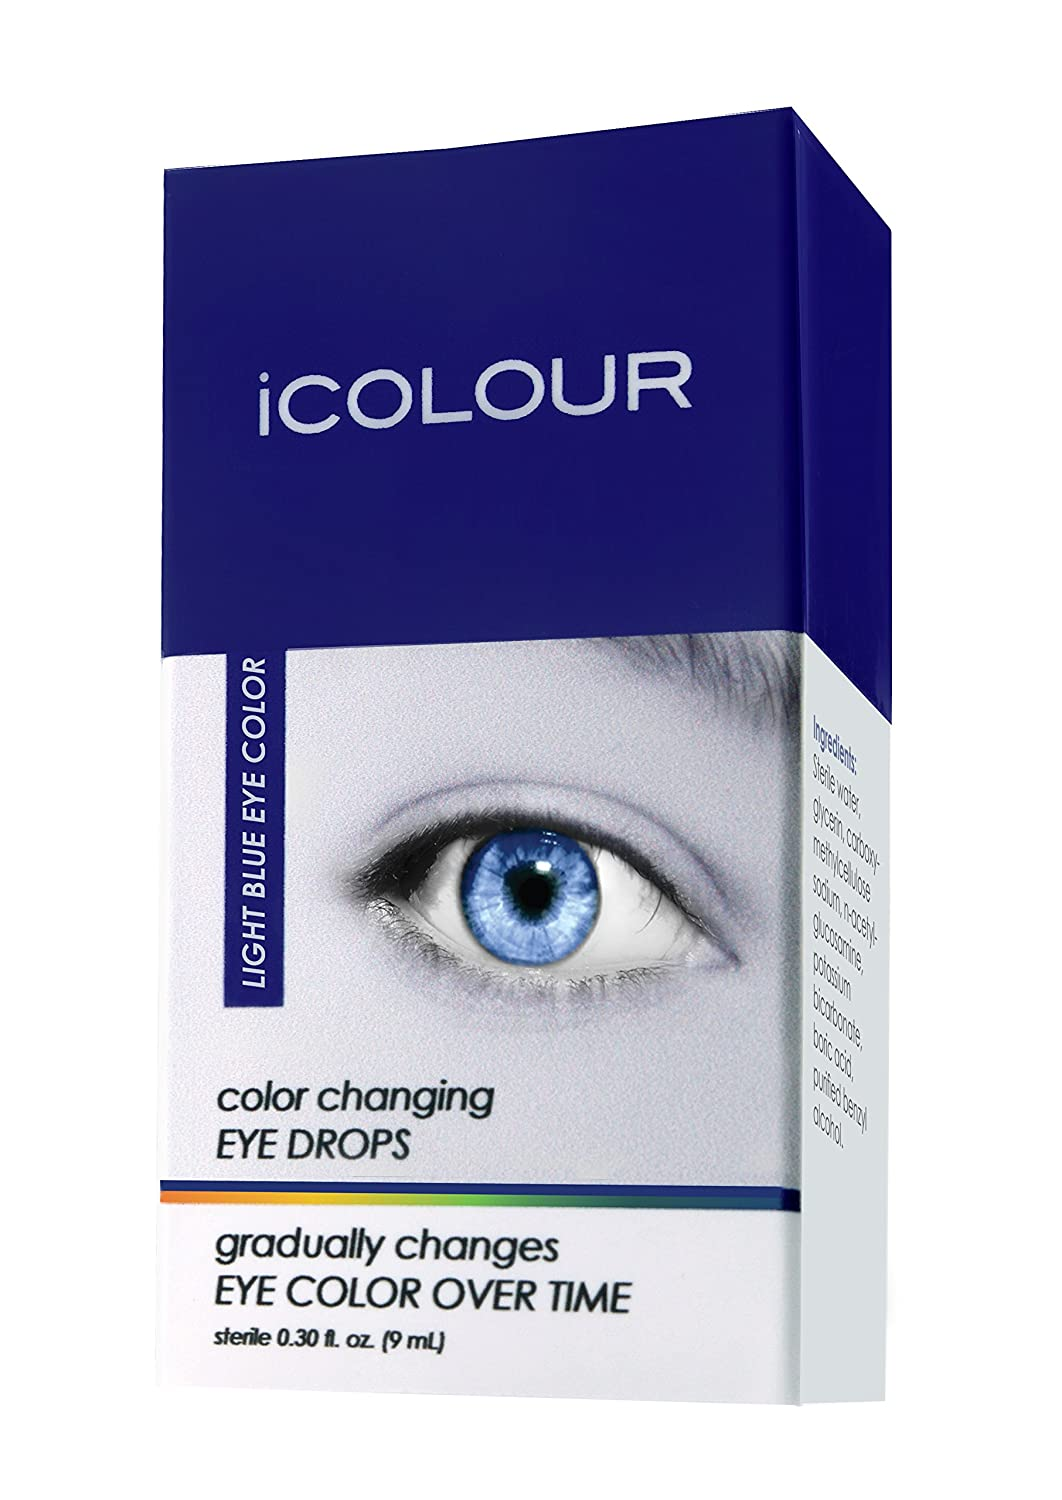 Amazon.com: iCOLOUR - Gotas de ojos que cambian de color ...